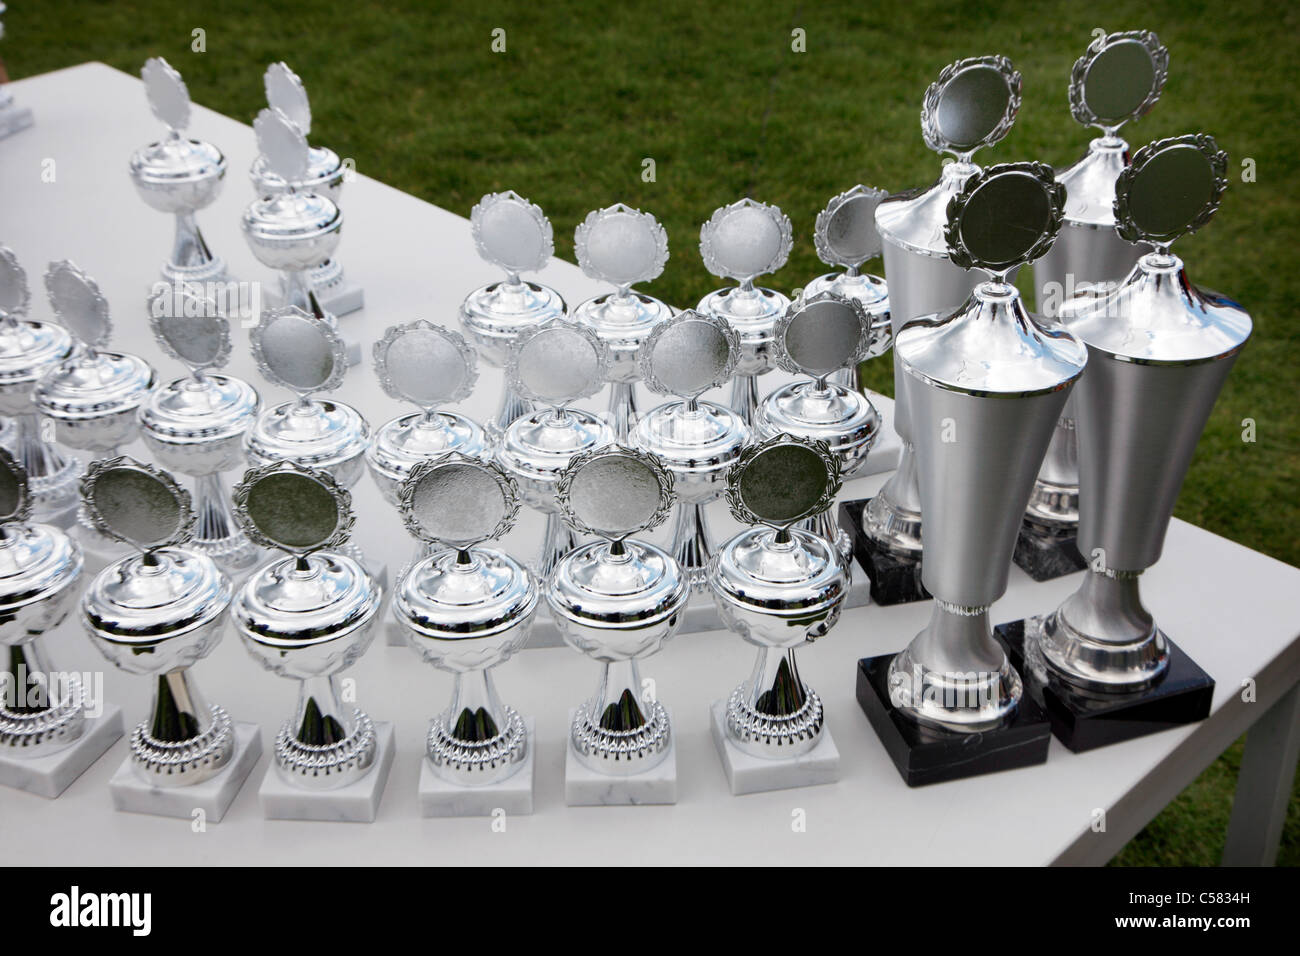 Silver cups waiting for winners of a sports competition. - Stock Image